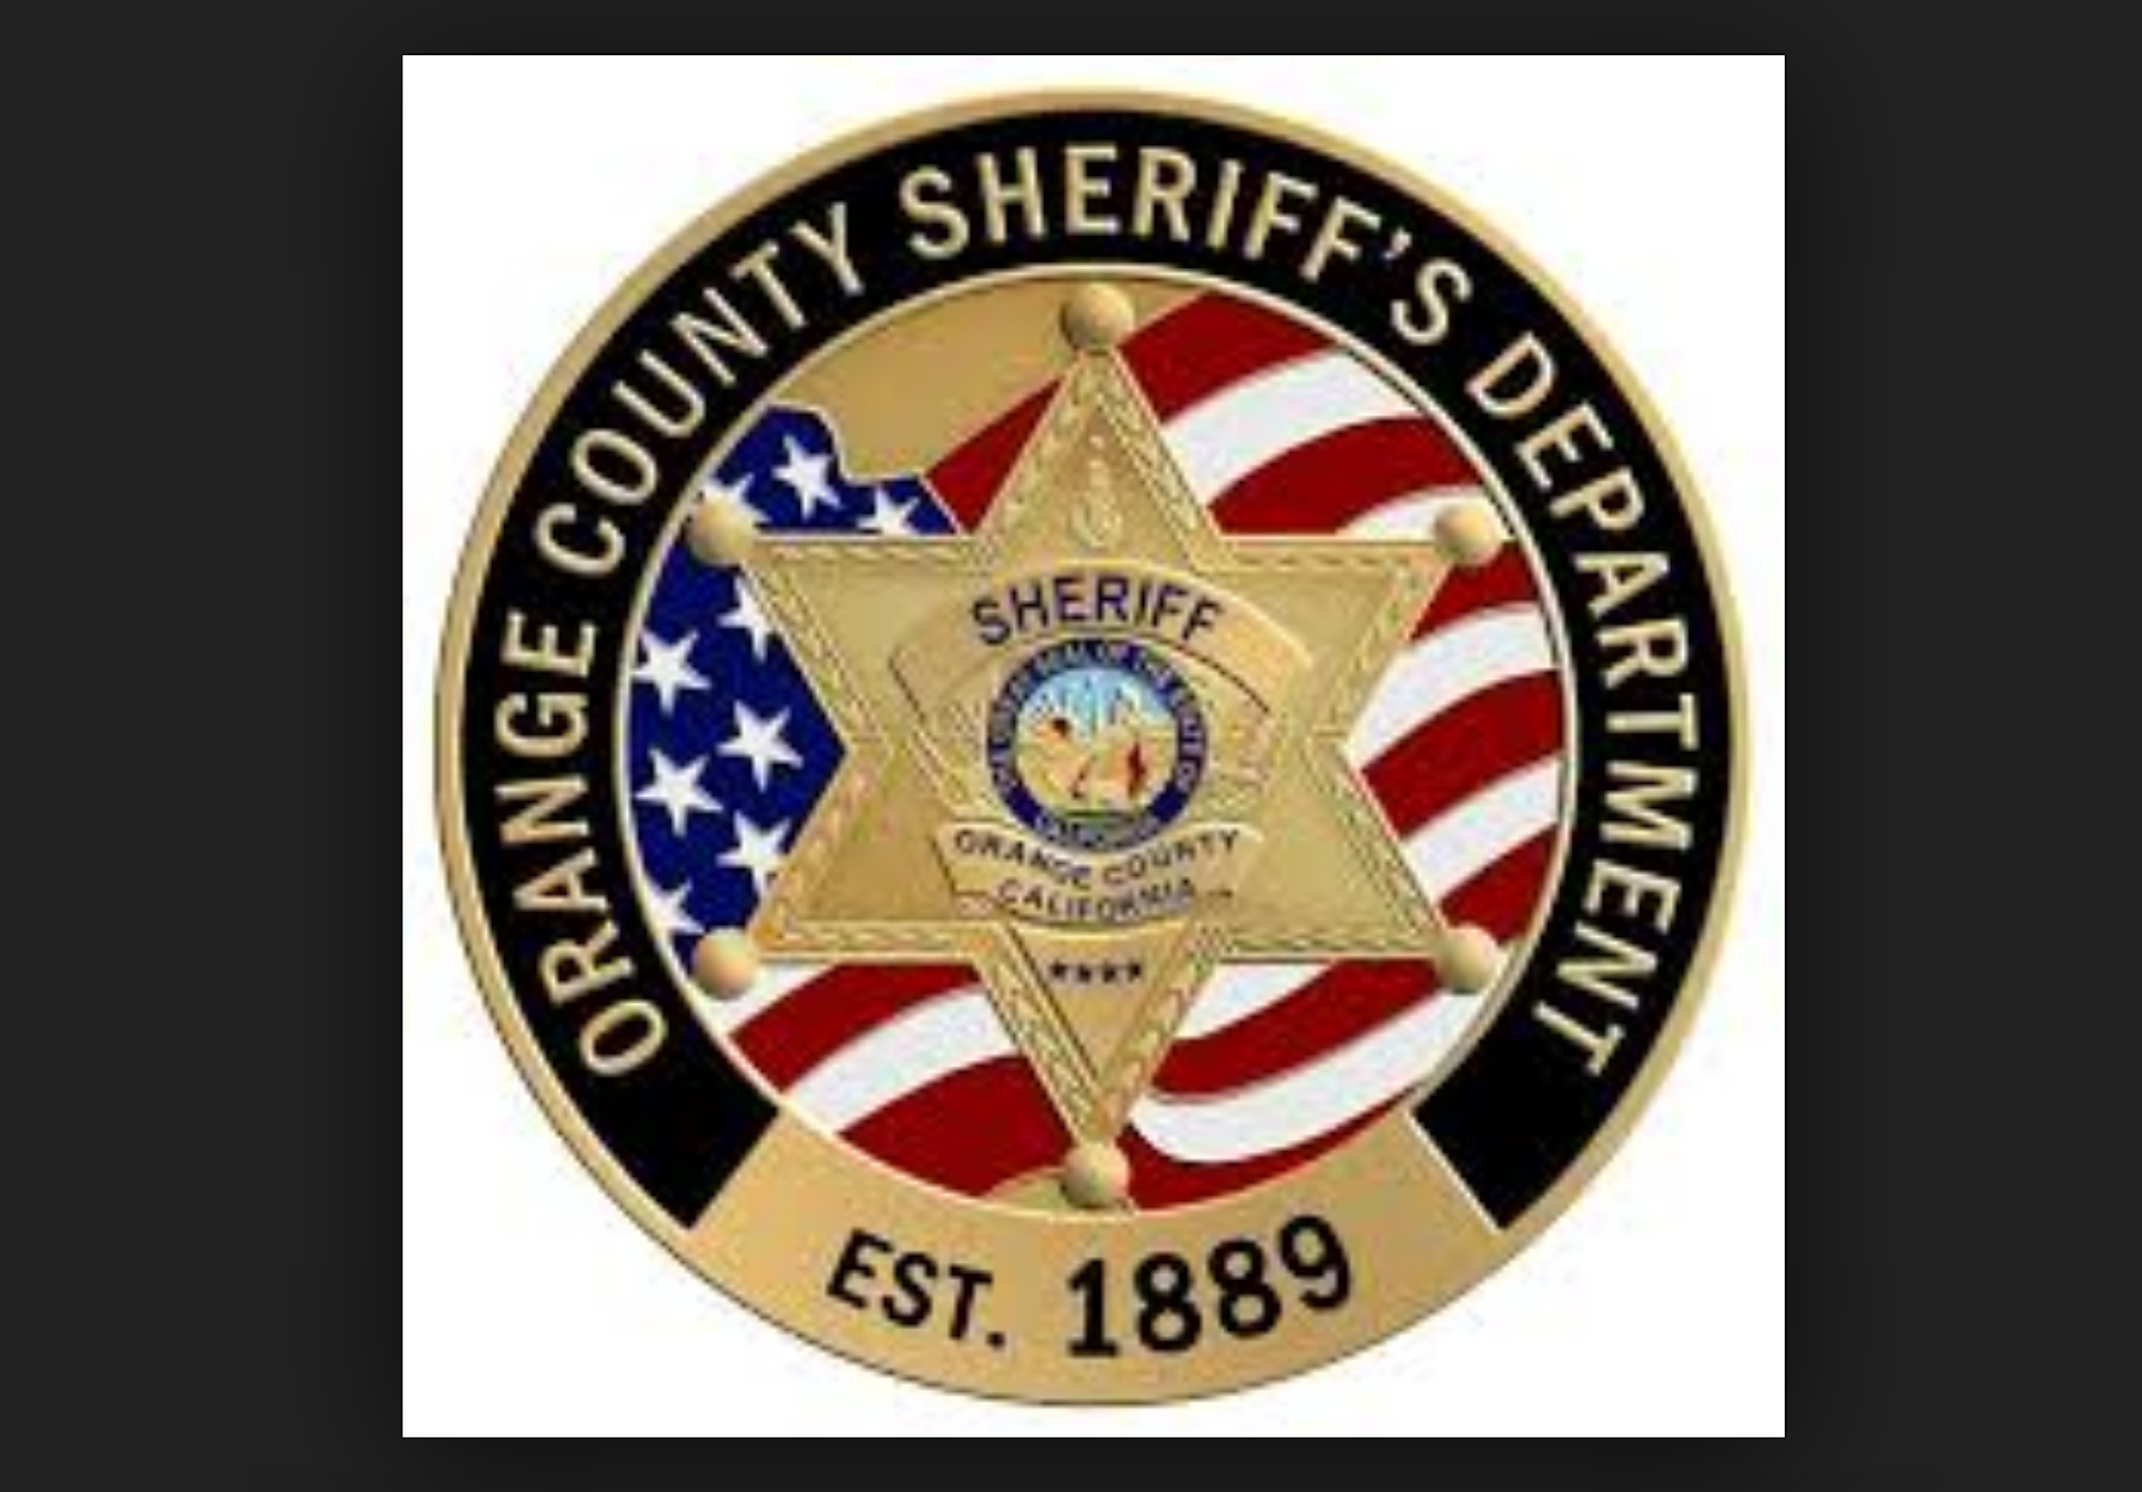 More OC Sheriff's Illegal Monitoring of Attorney-Client Calls Revealed